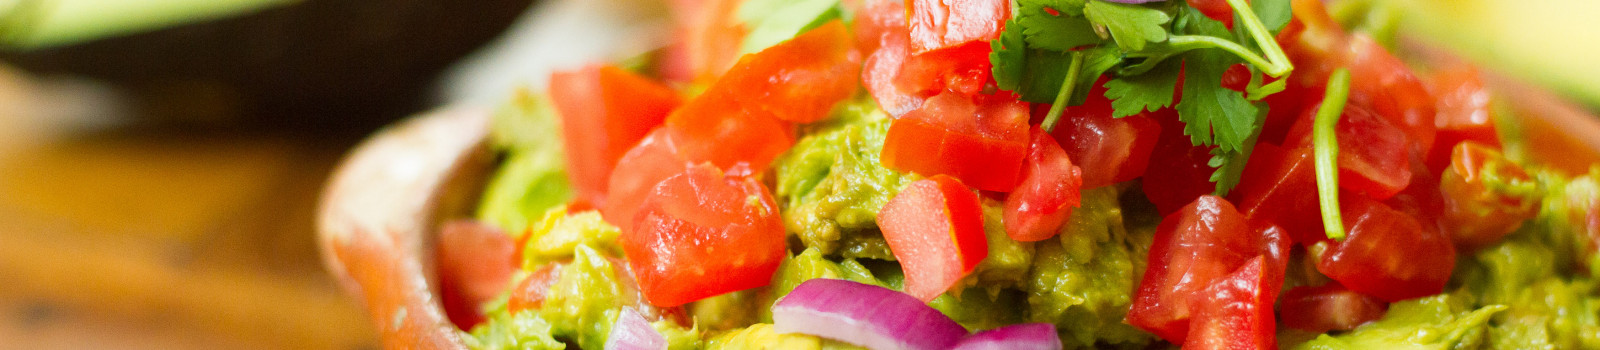 Make-Authentic-Mexican-Guacamole-Final